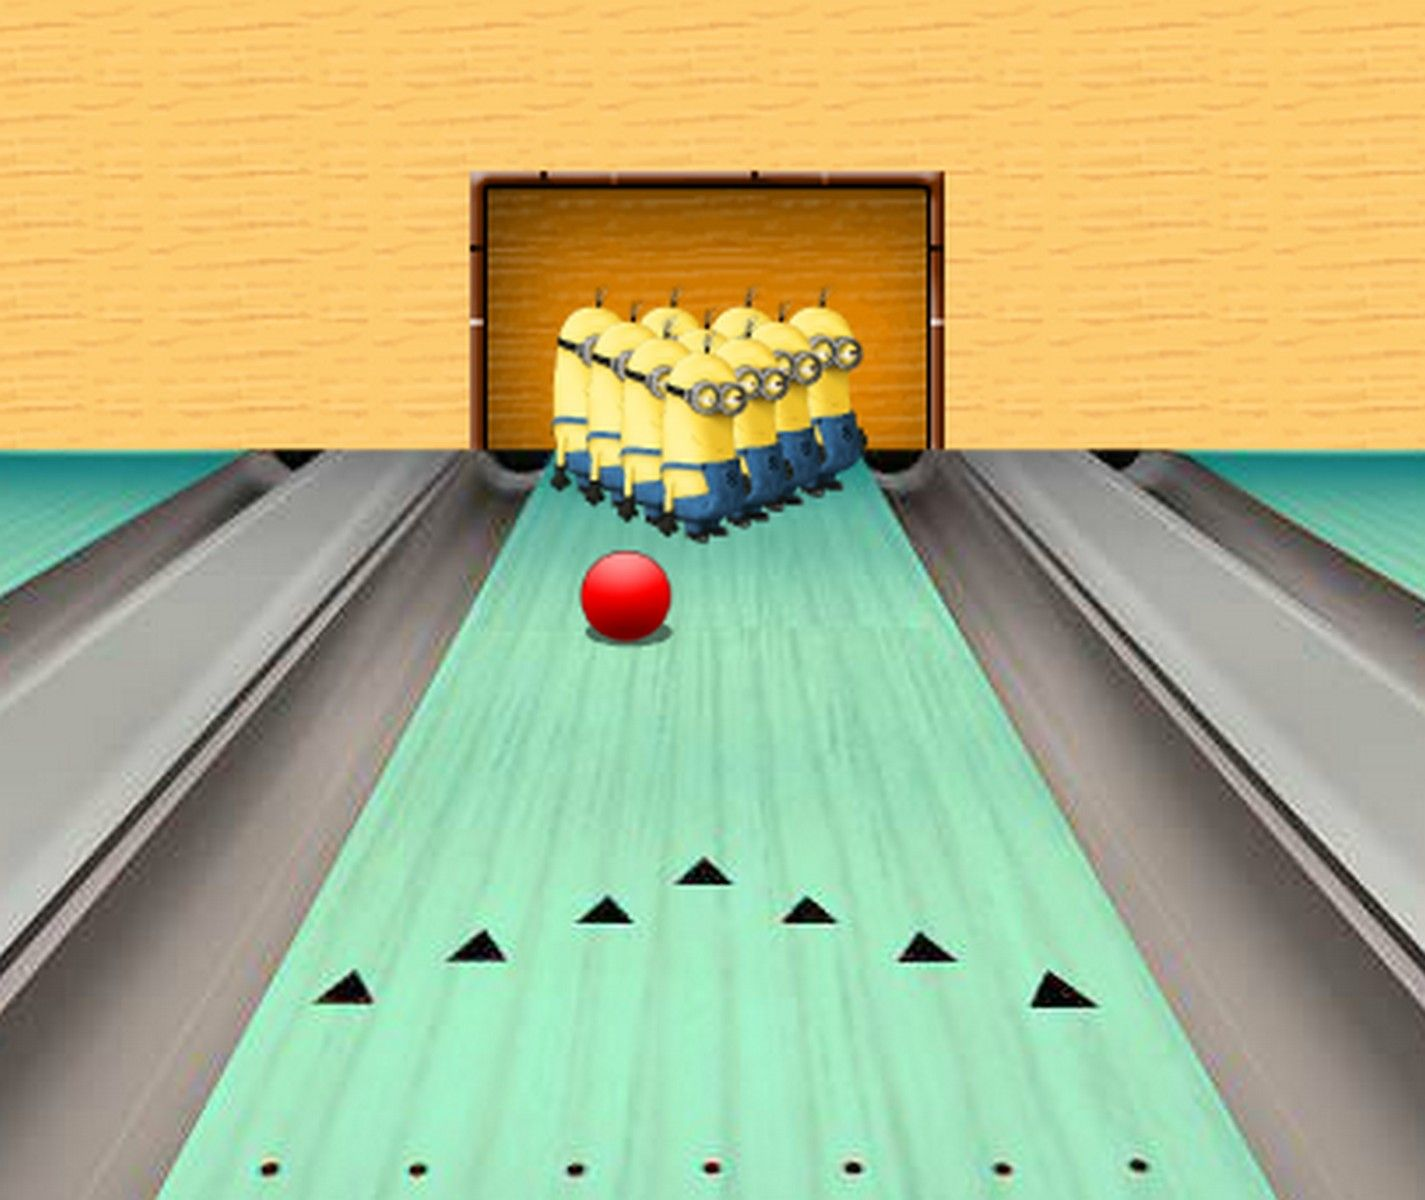 Have some fun playing a set of Minions bowling game. Try